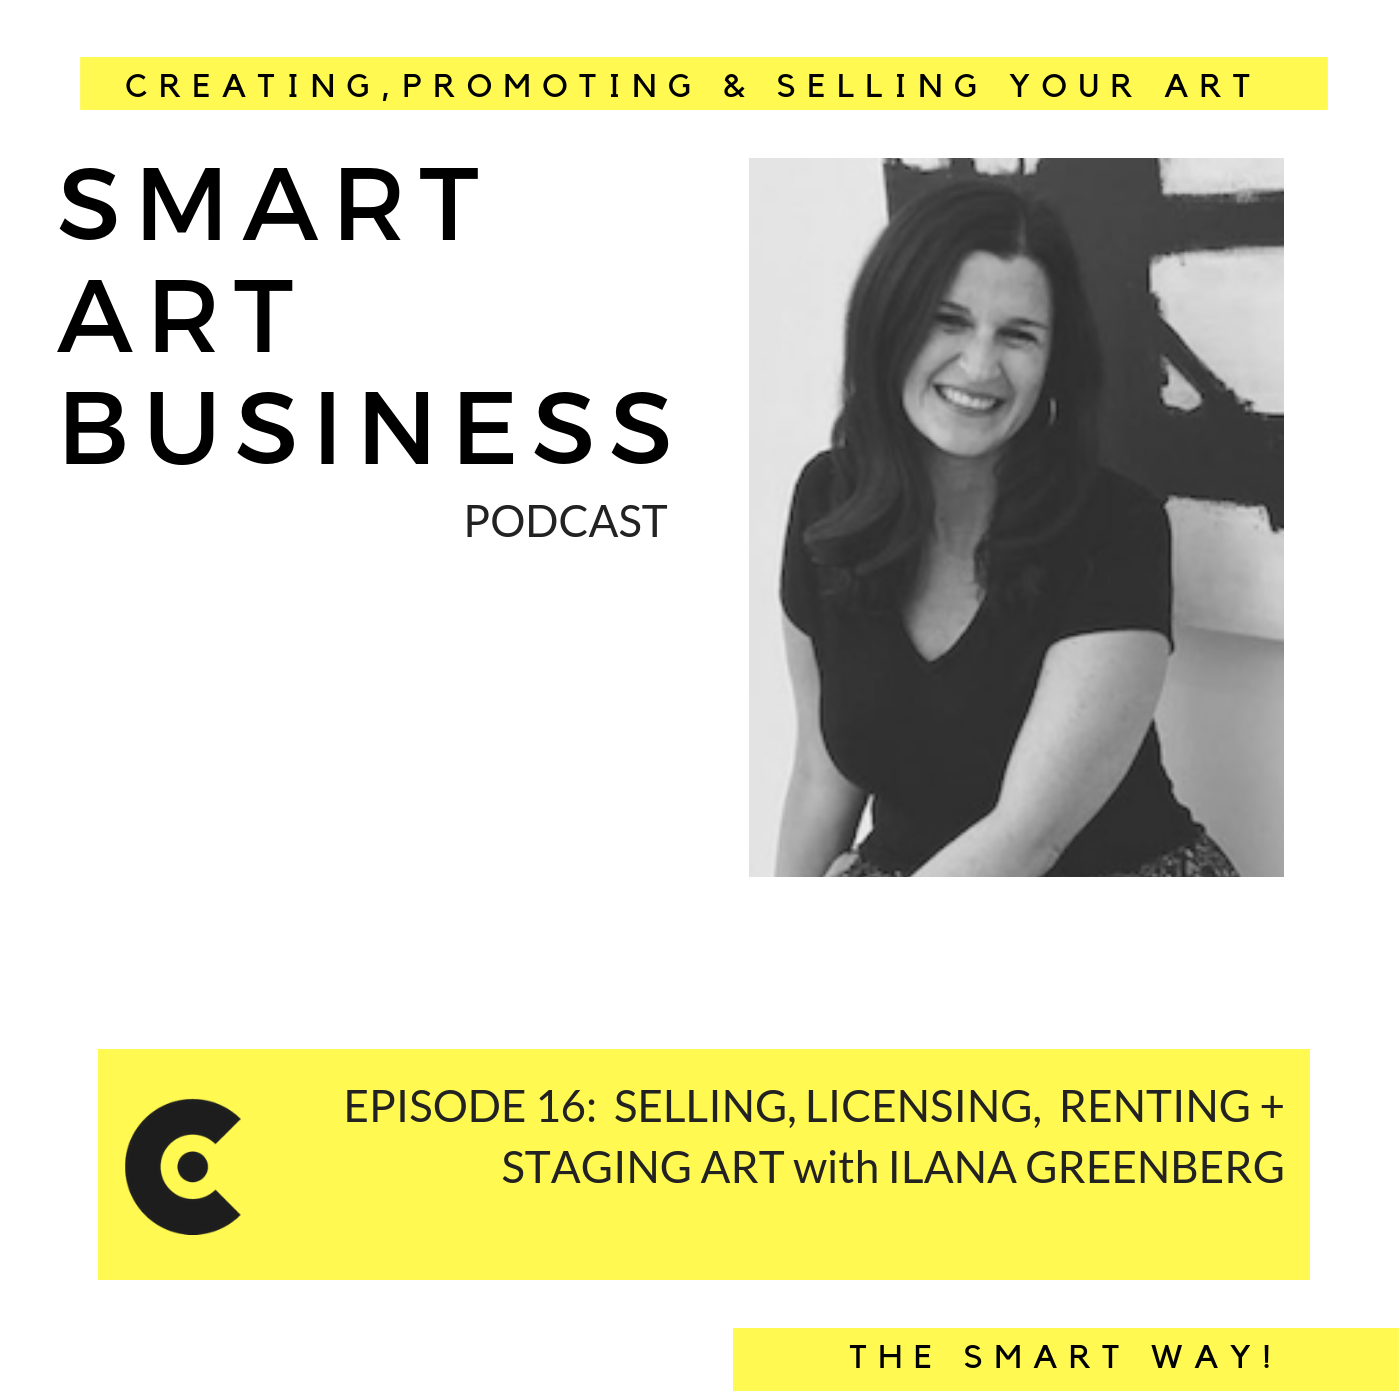 Selling, Licensing, Renting + Staging Art with Ilana Greenberg